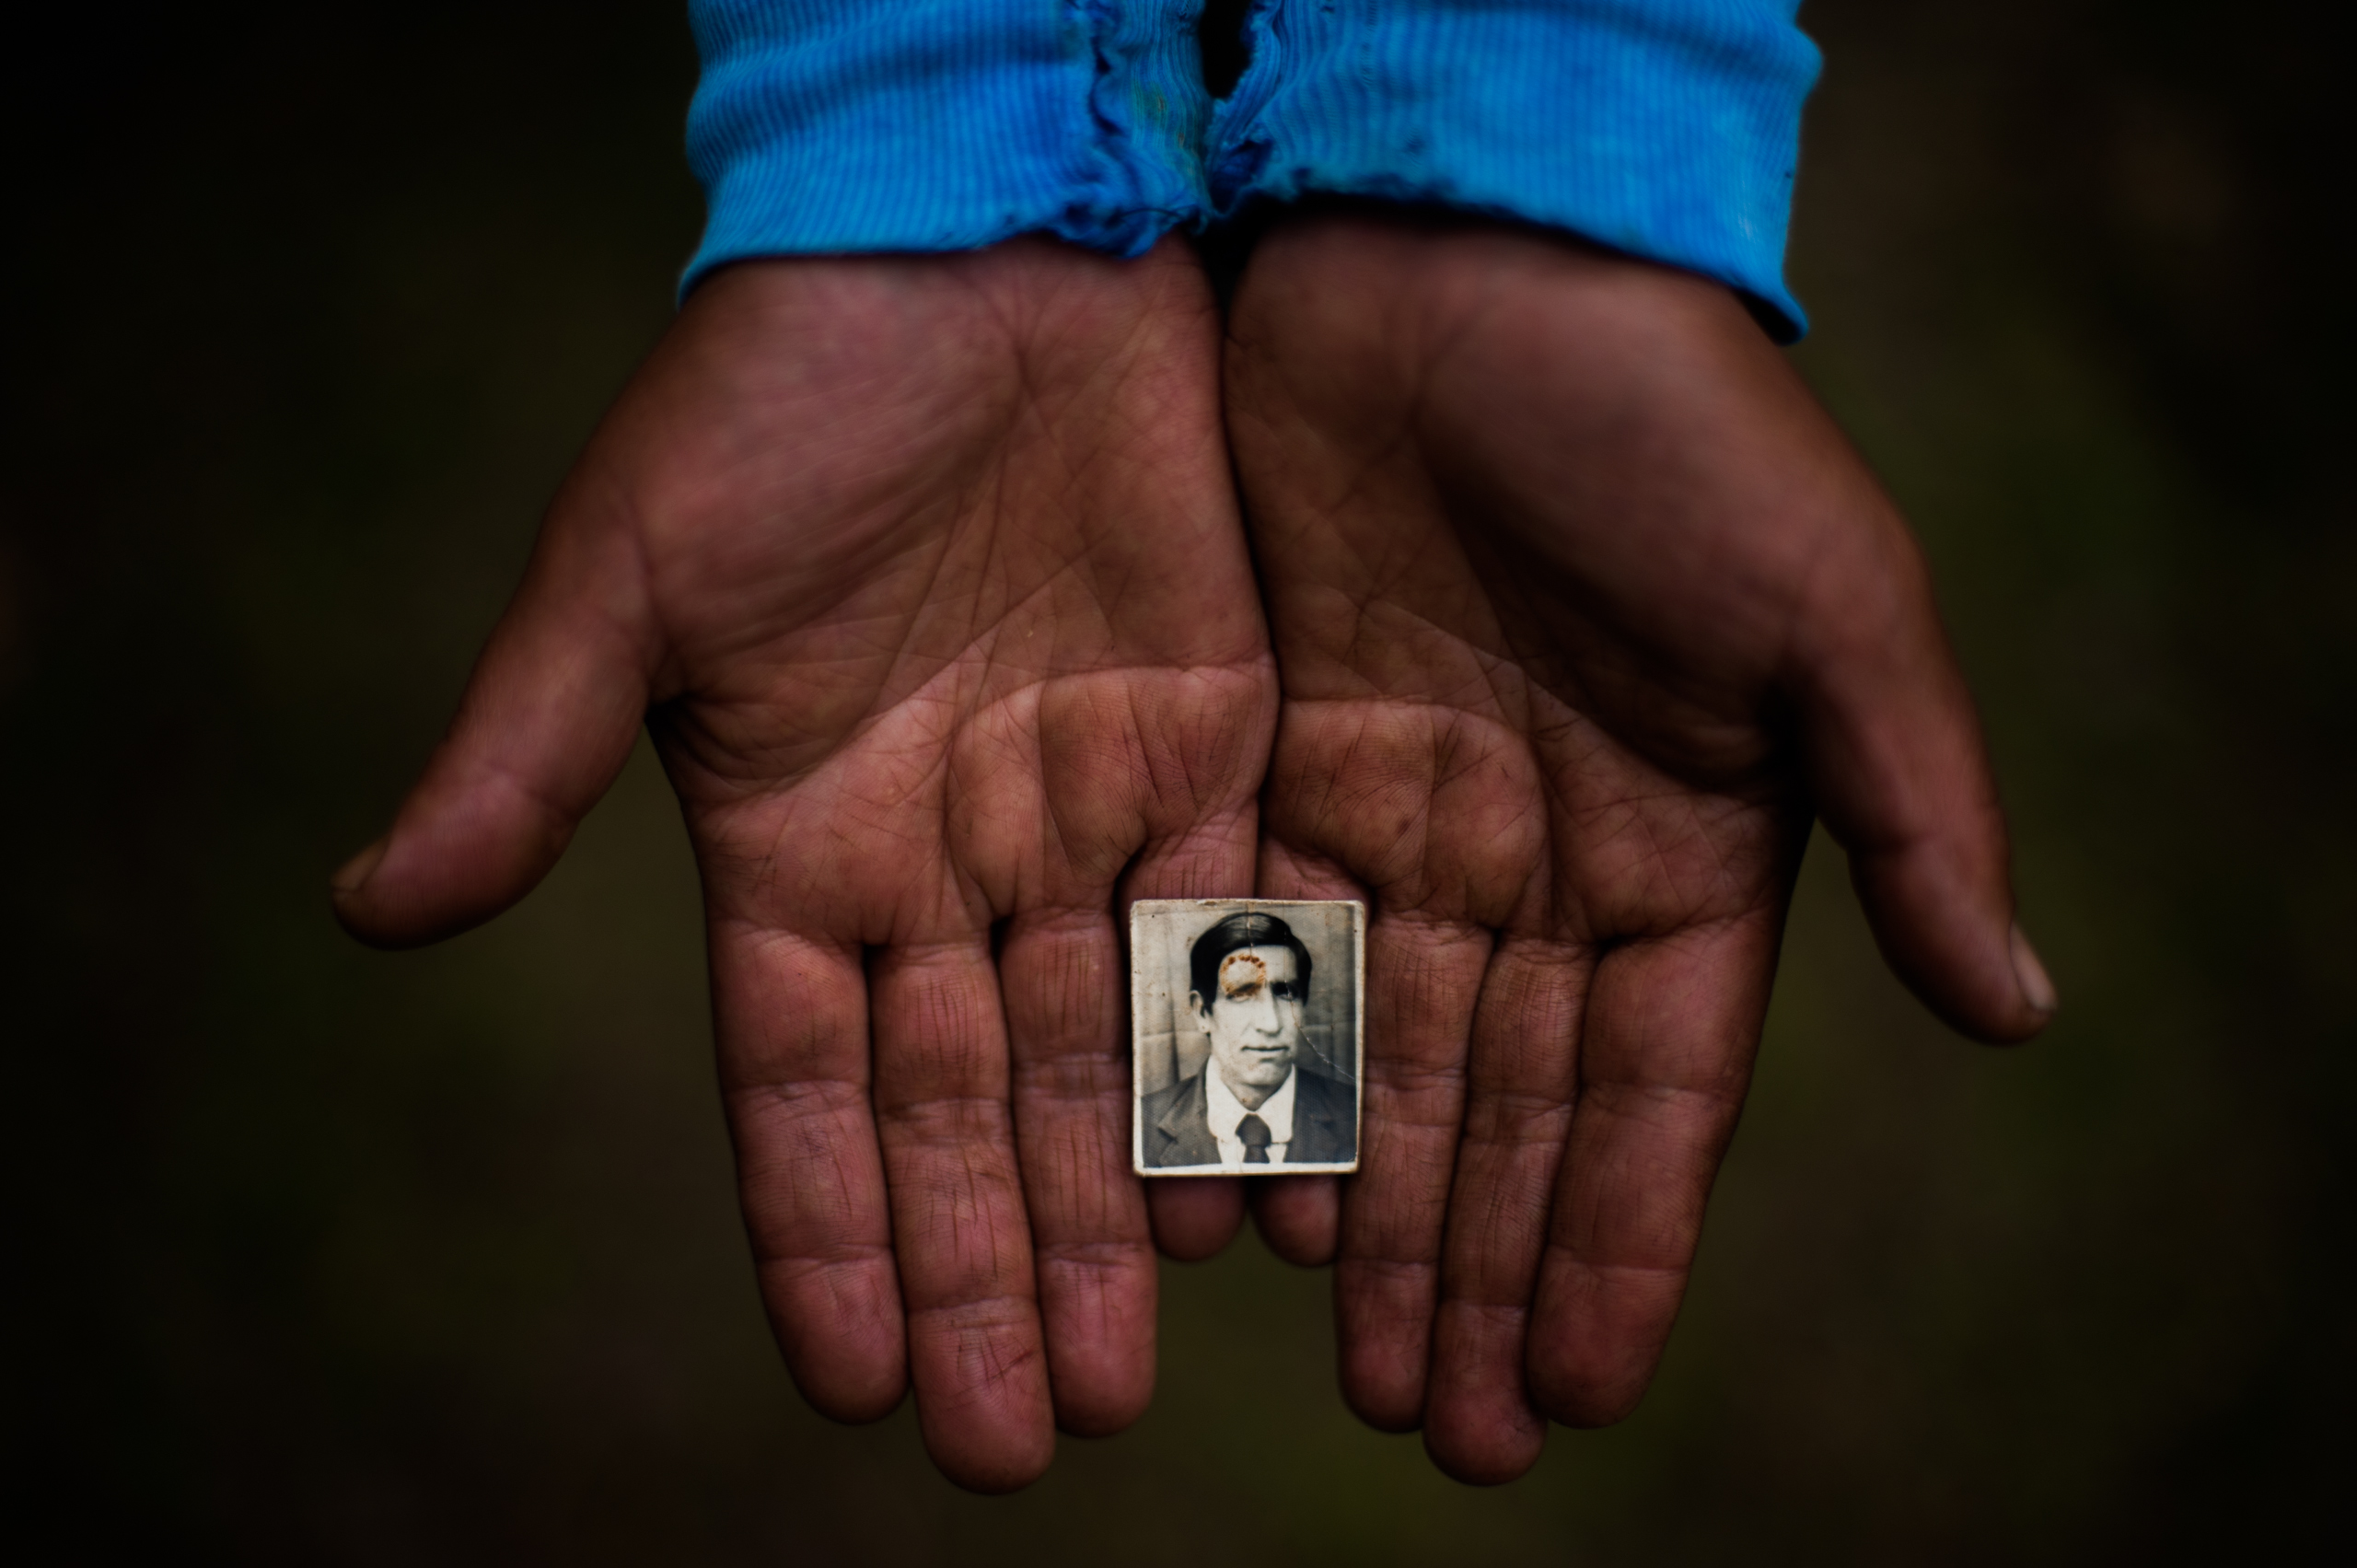 Eulalio Noriega Noriega, 38. From Chajul. Kidnapped on the road to Pulay on August 15, 1983.